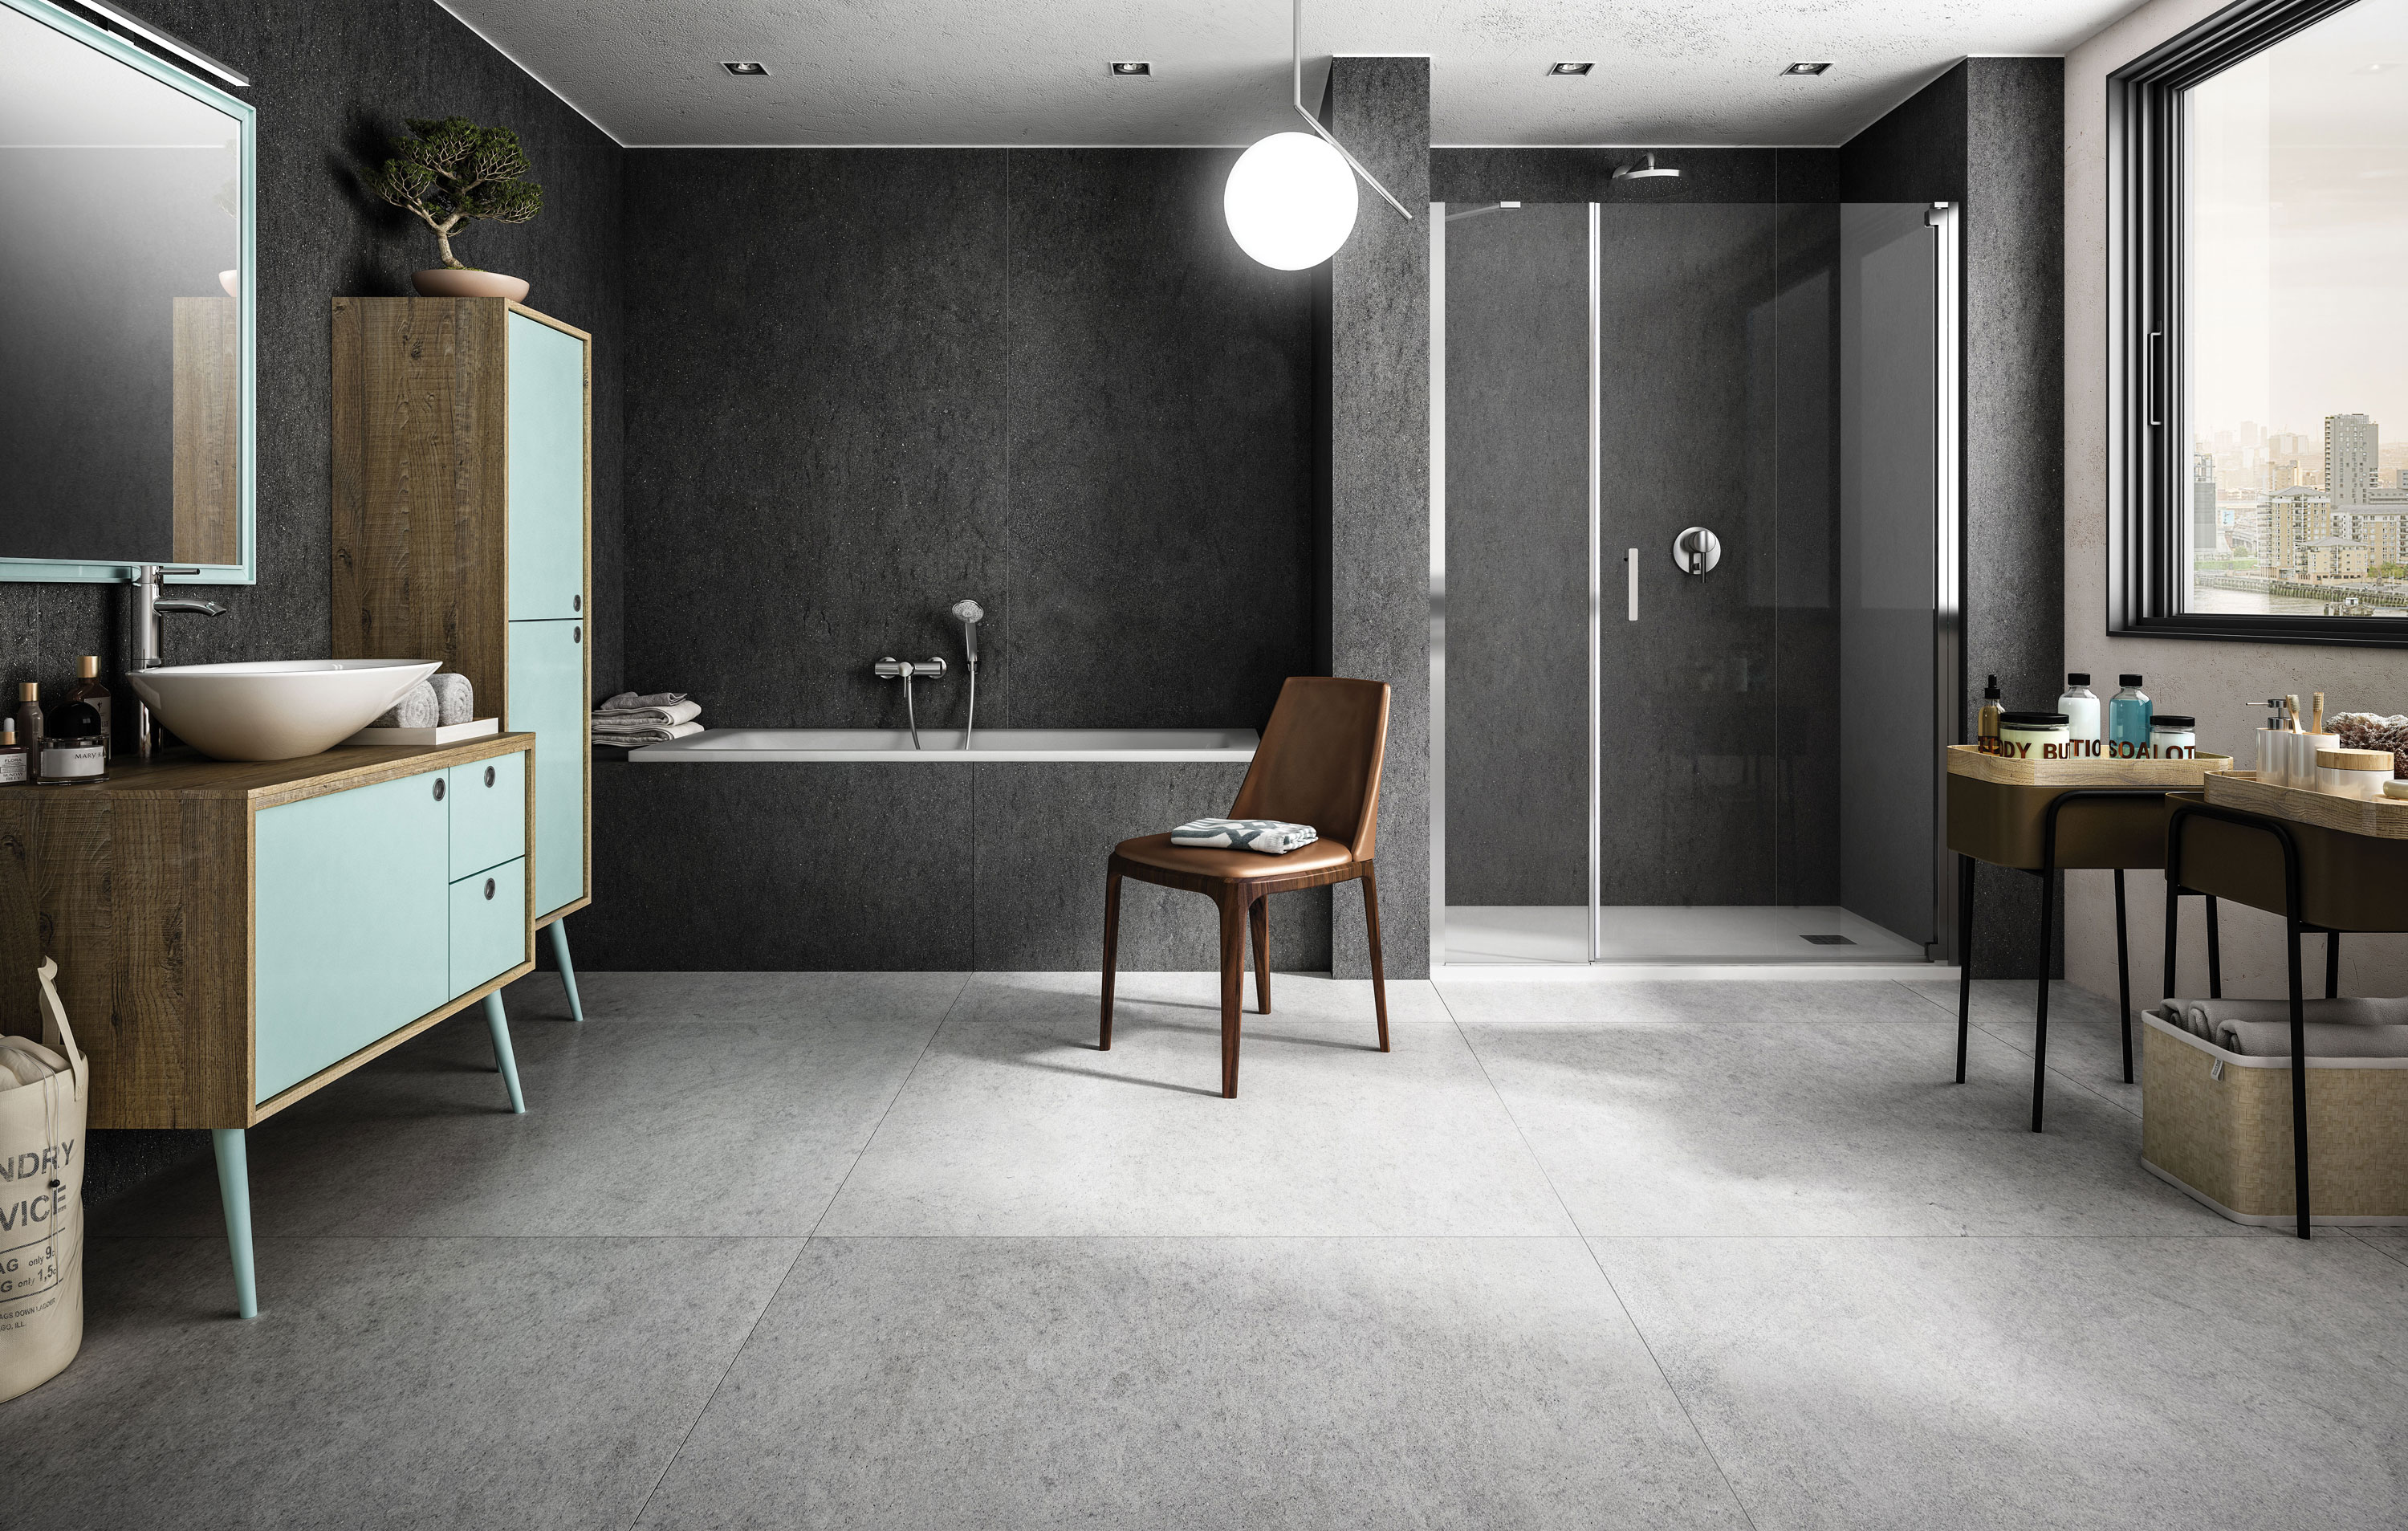 RAK Ceramics product feature for SBID interior design blog